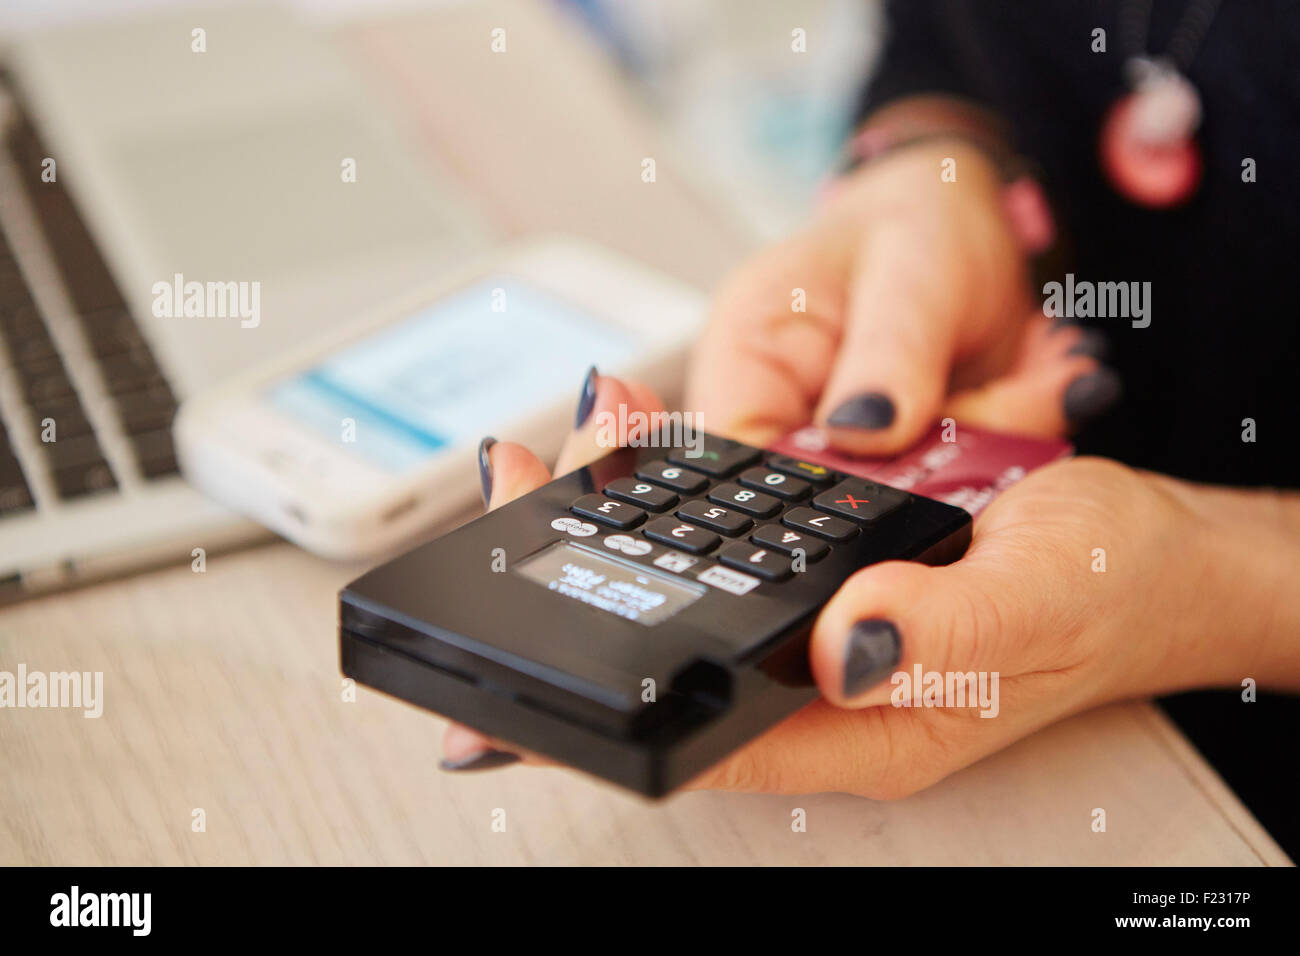 A woman's hands holding a credit card reader, processing payment or paying for goods. - Stock Image